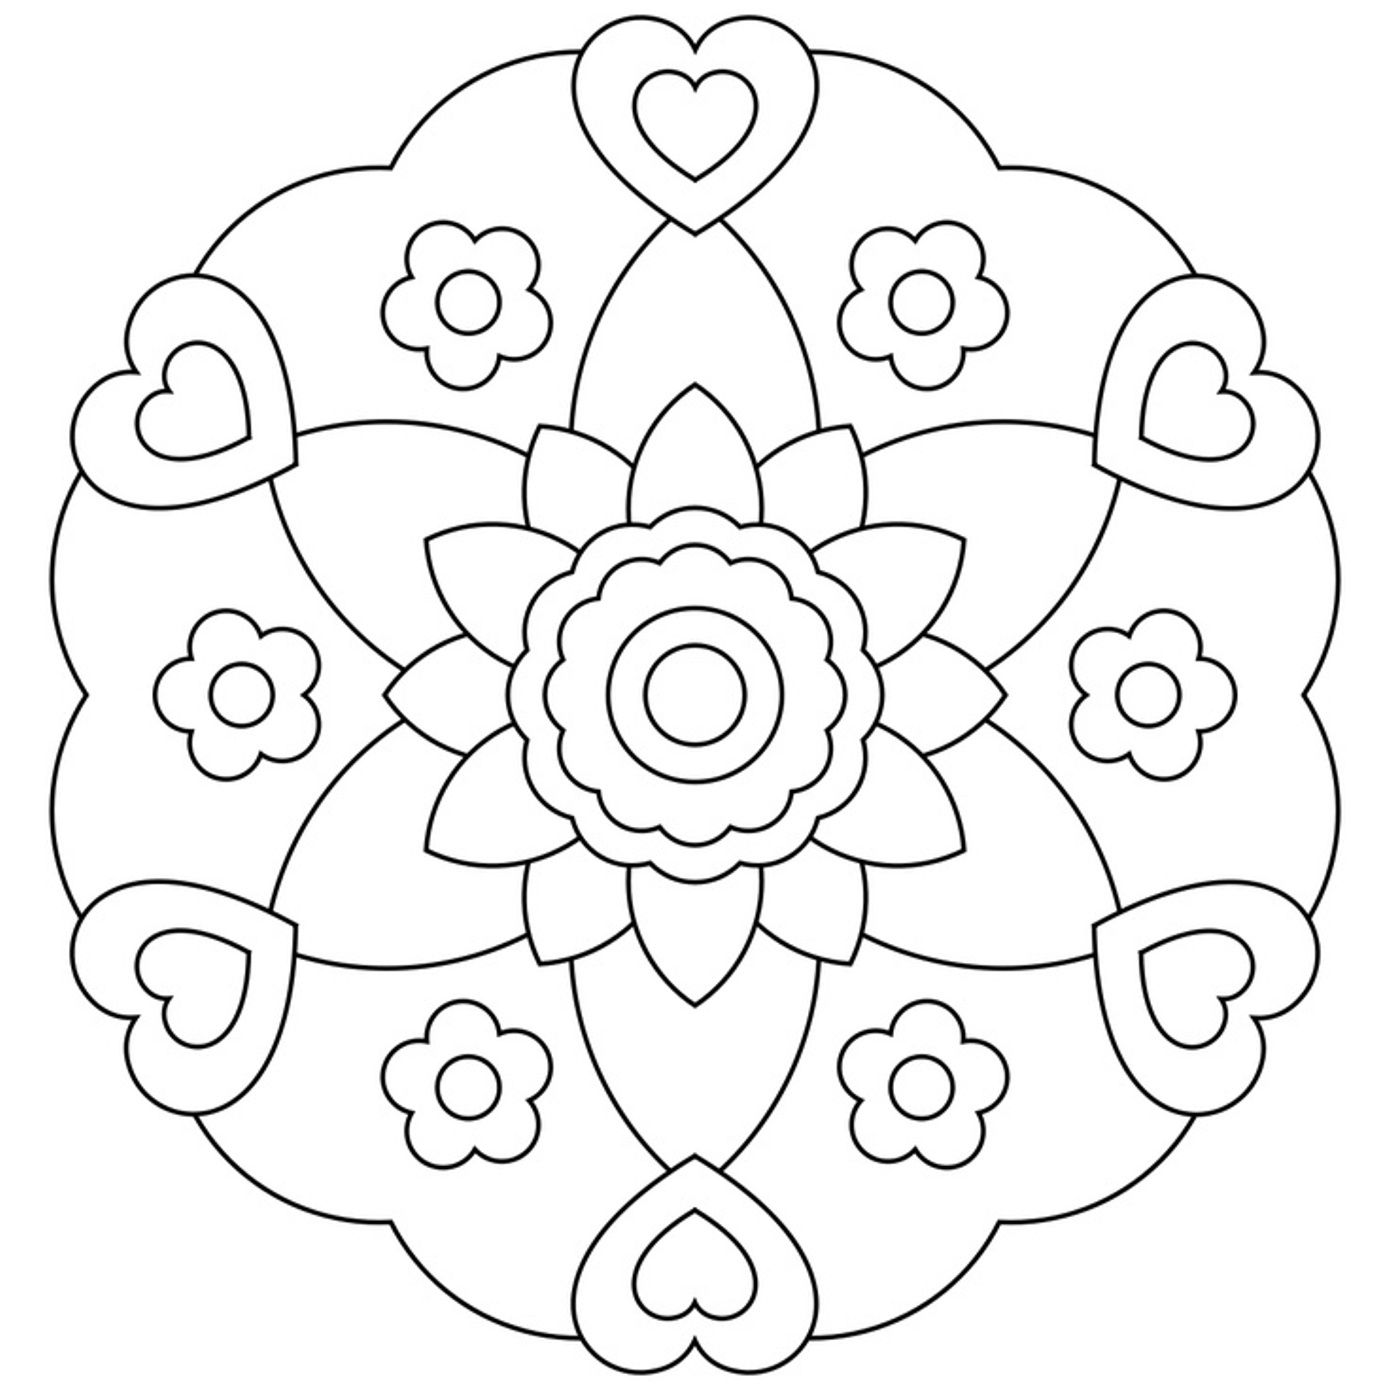 Mandala coloring pages for kindergarteners - Flowerish Mandala Coloring Pages